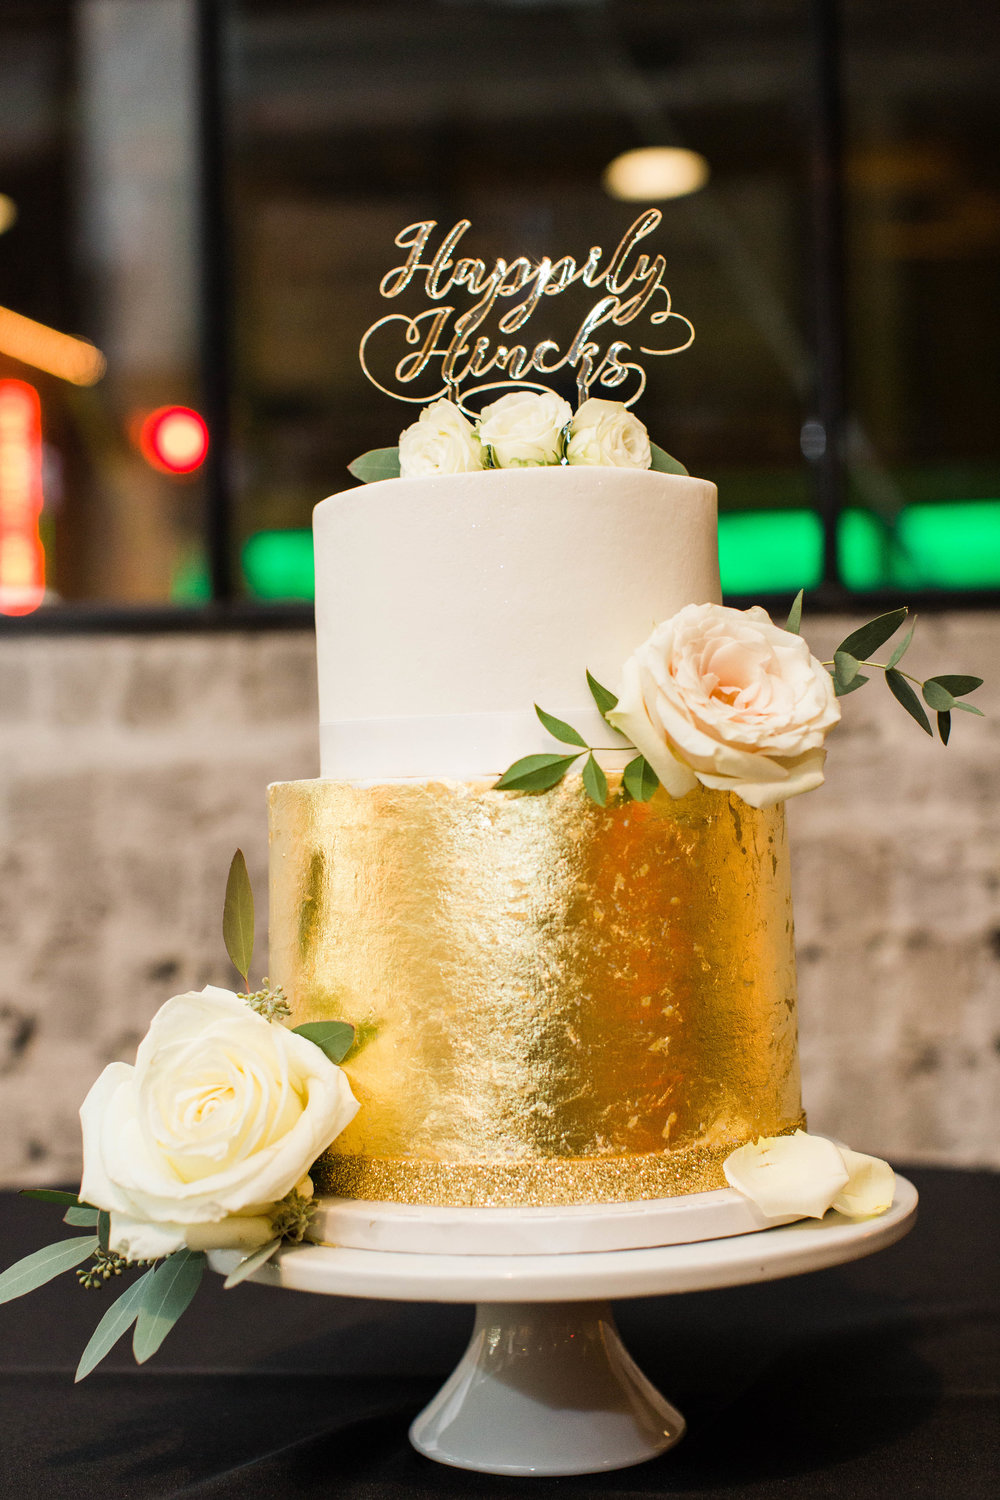 Photo cred:  Marie Violet  // Cake by  Cake Delights  // Topper by  Jollity & Co . // Flowers by  Studio Posy